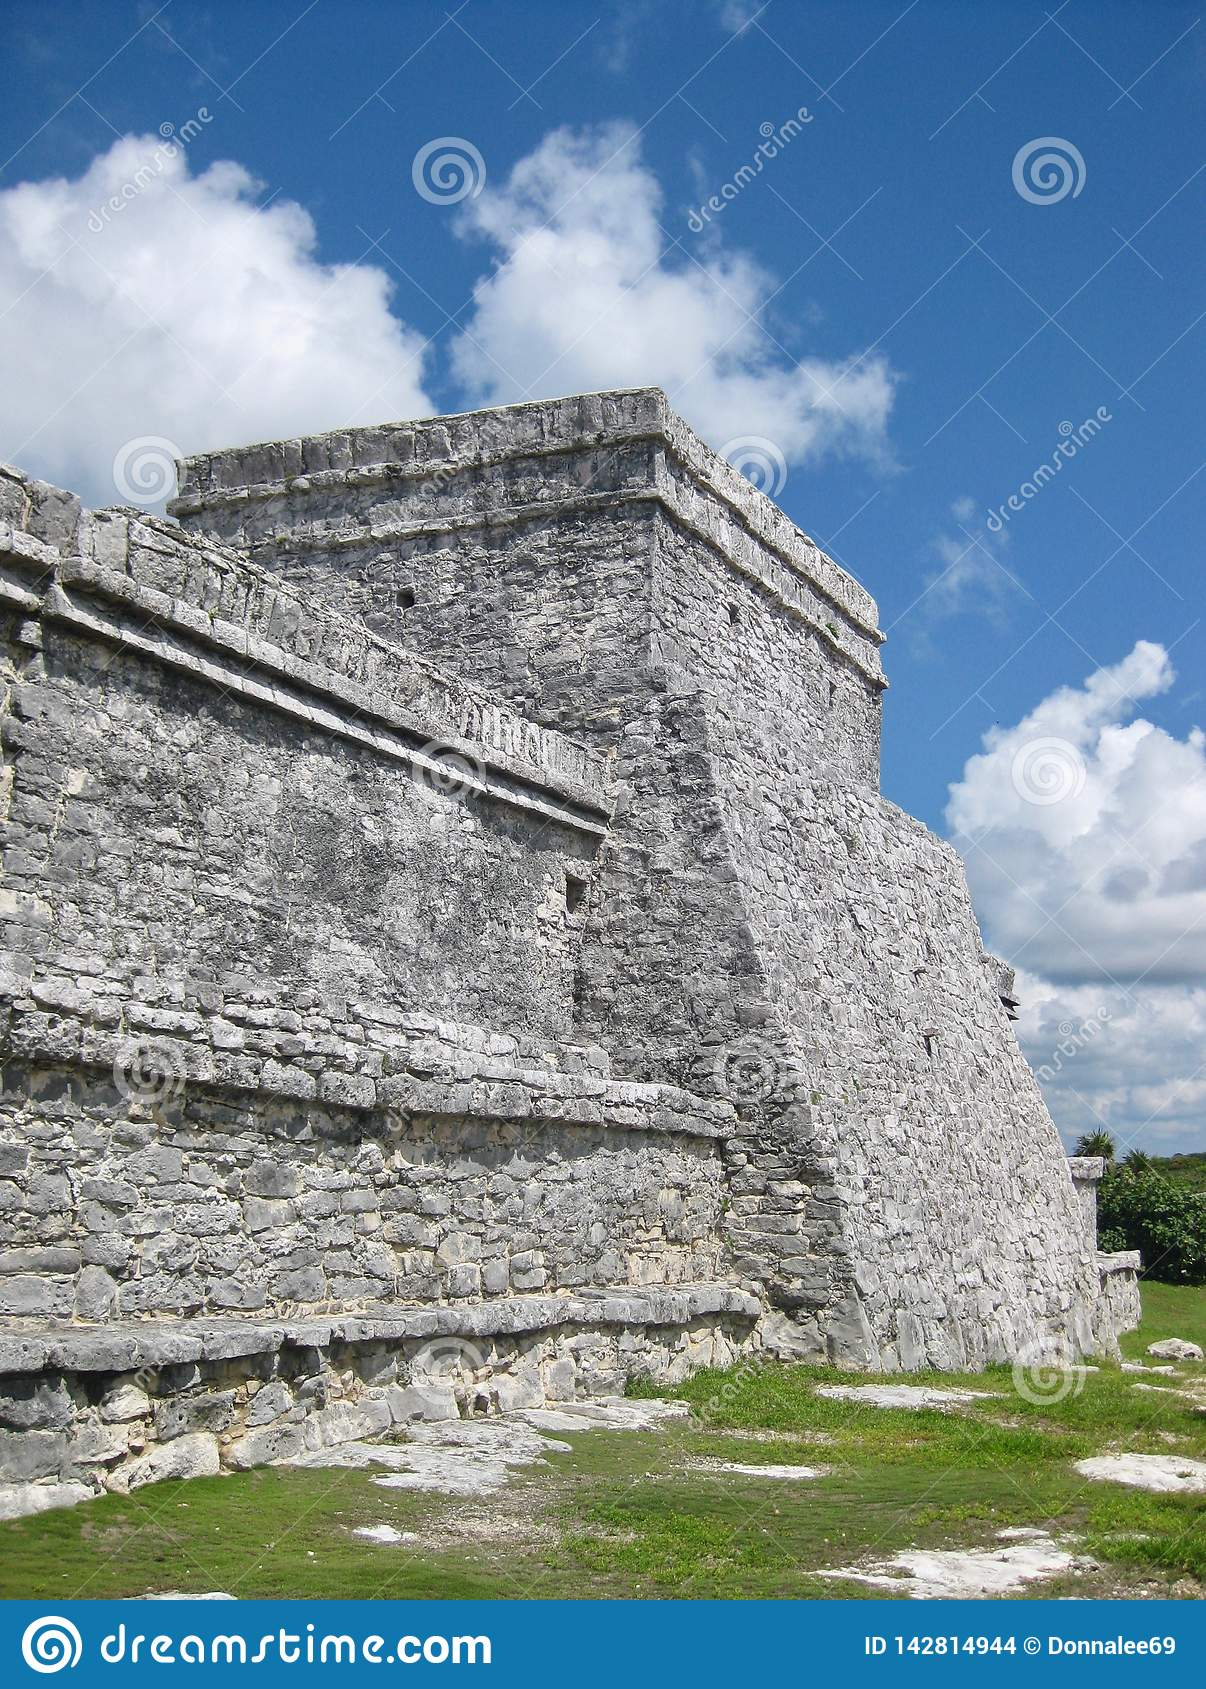 Ruins at Tulum Archaeological Site on Mexico`s Caribbean Coast